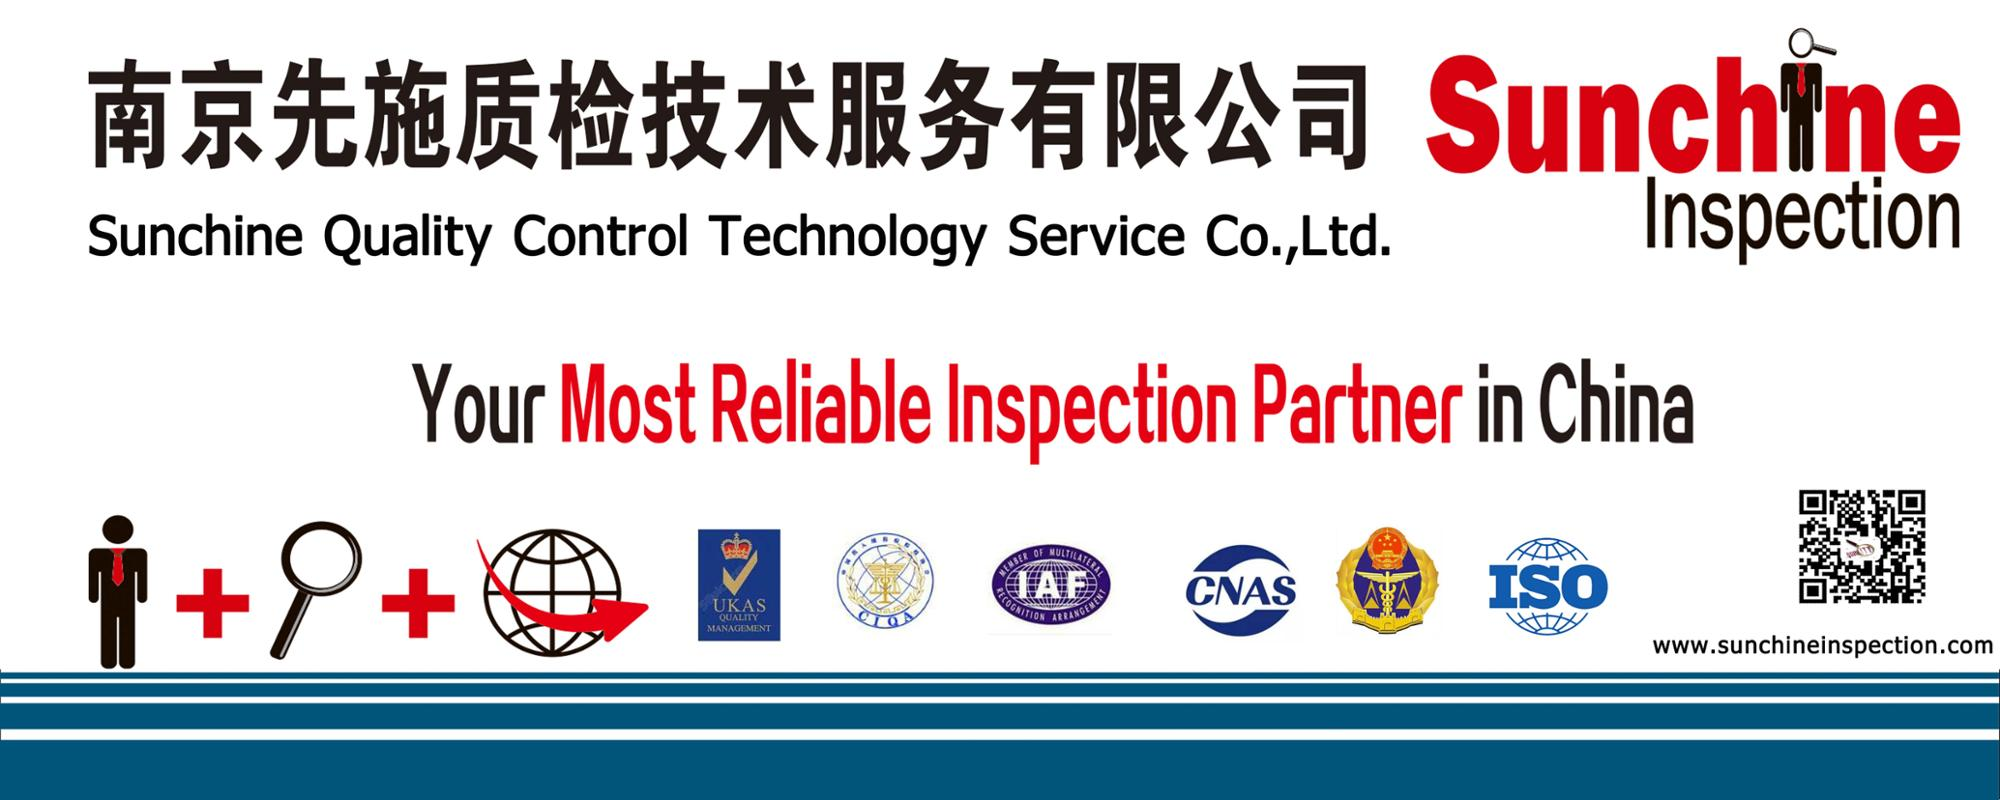 India BIS certification for household appliances / Quality inspection services